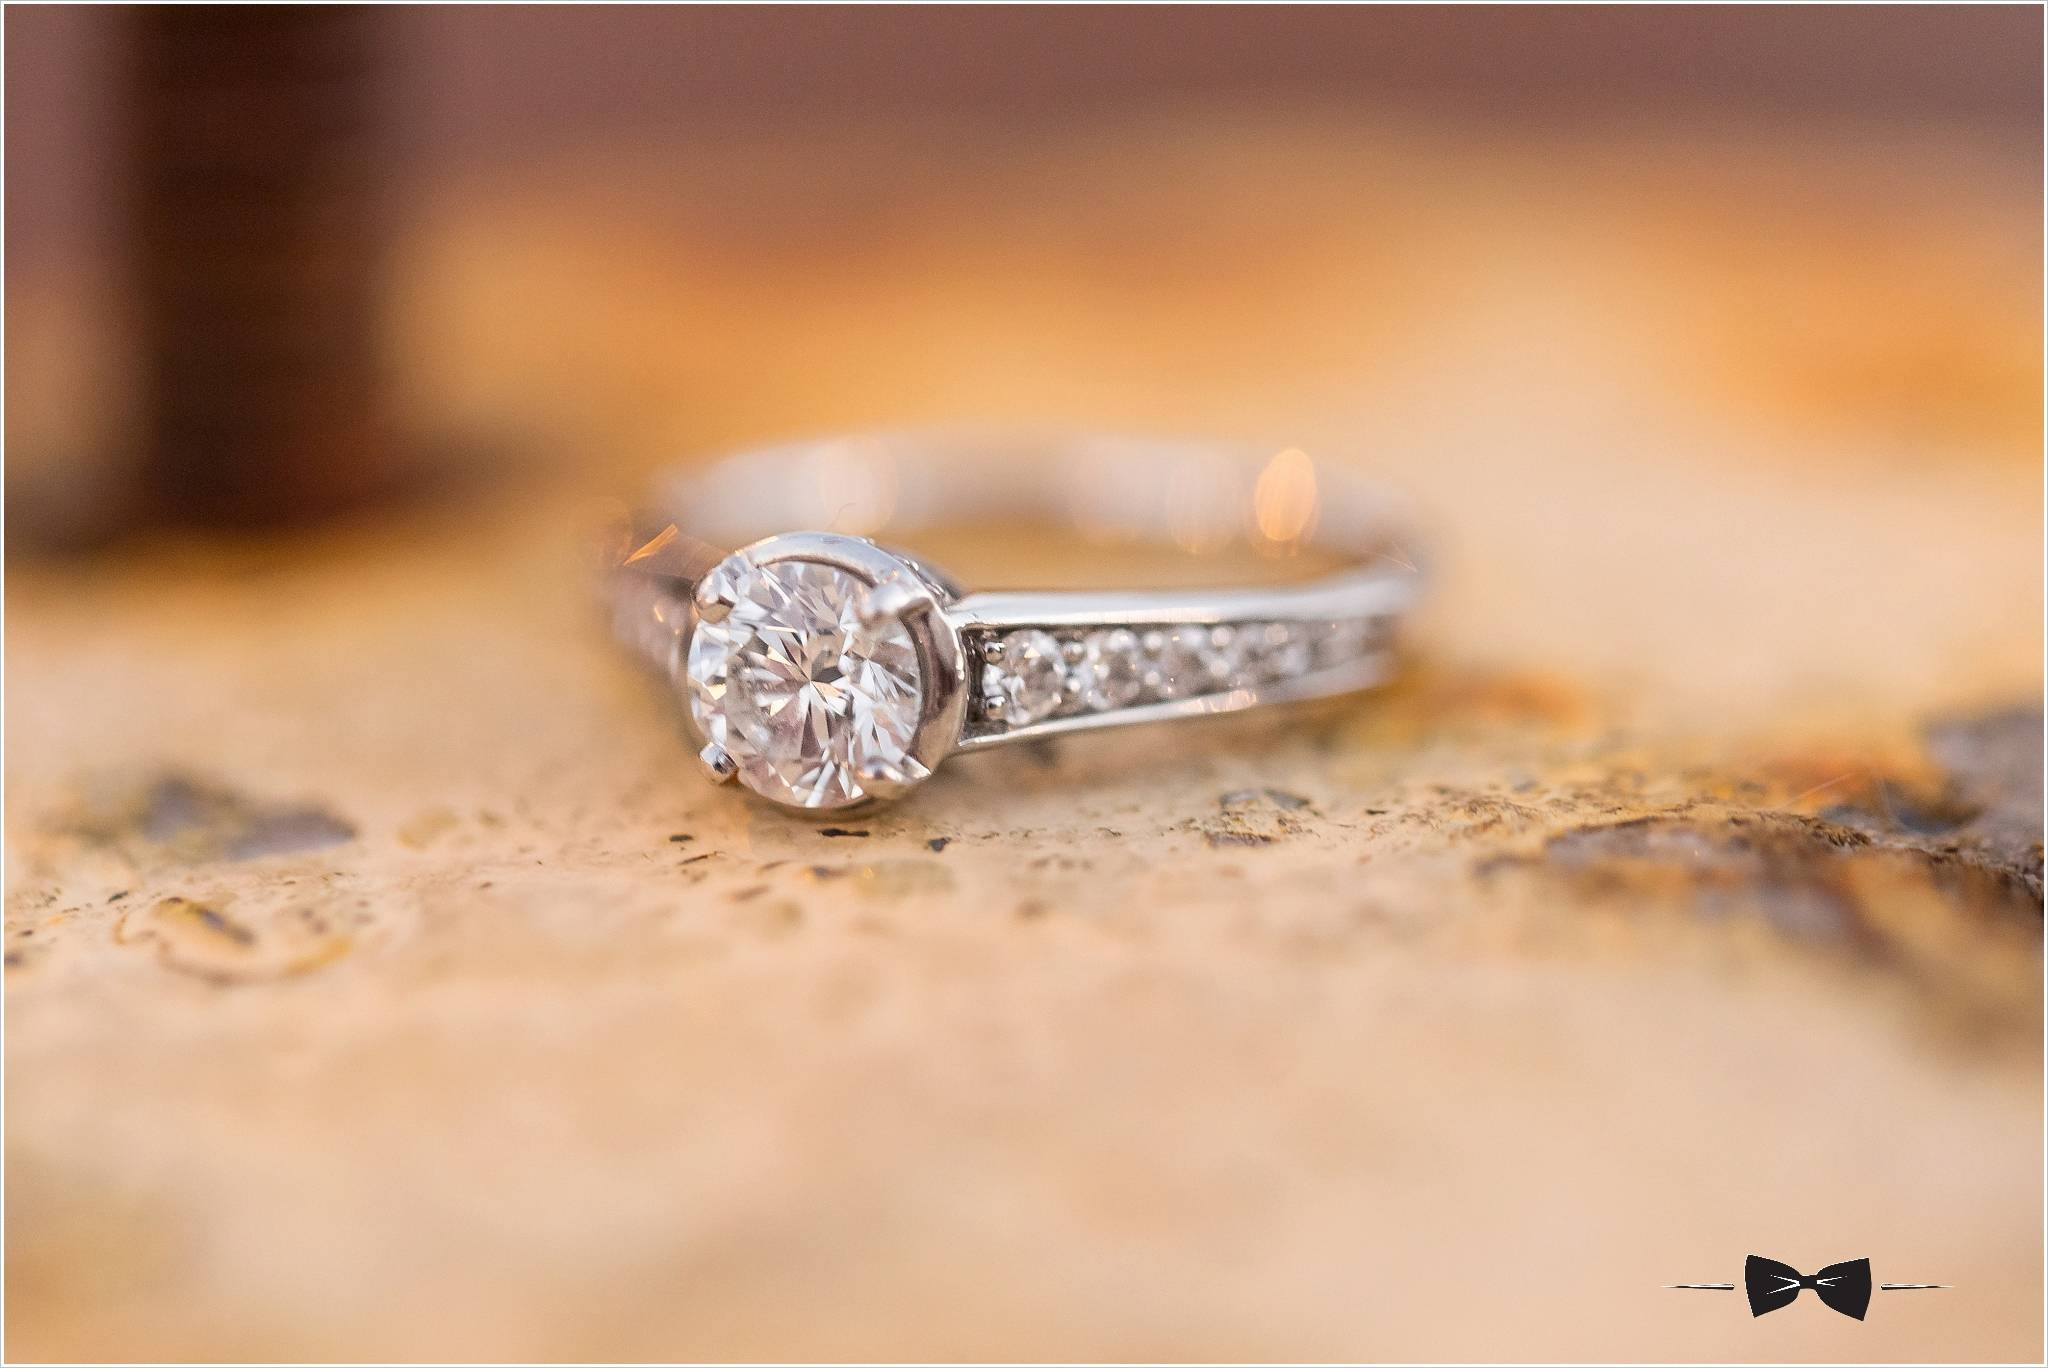 Lindsey + Preston – Washington, Dc Engagement With Regard To Washington Dc Engagement Rings (View 9 of 15)